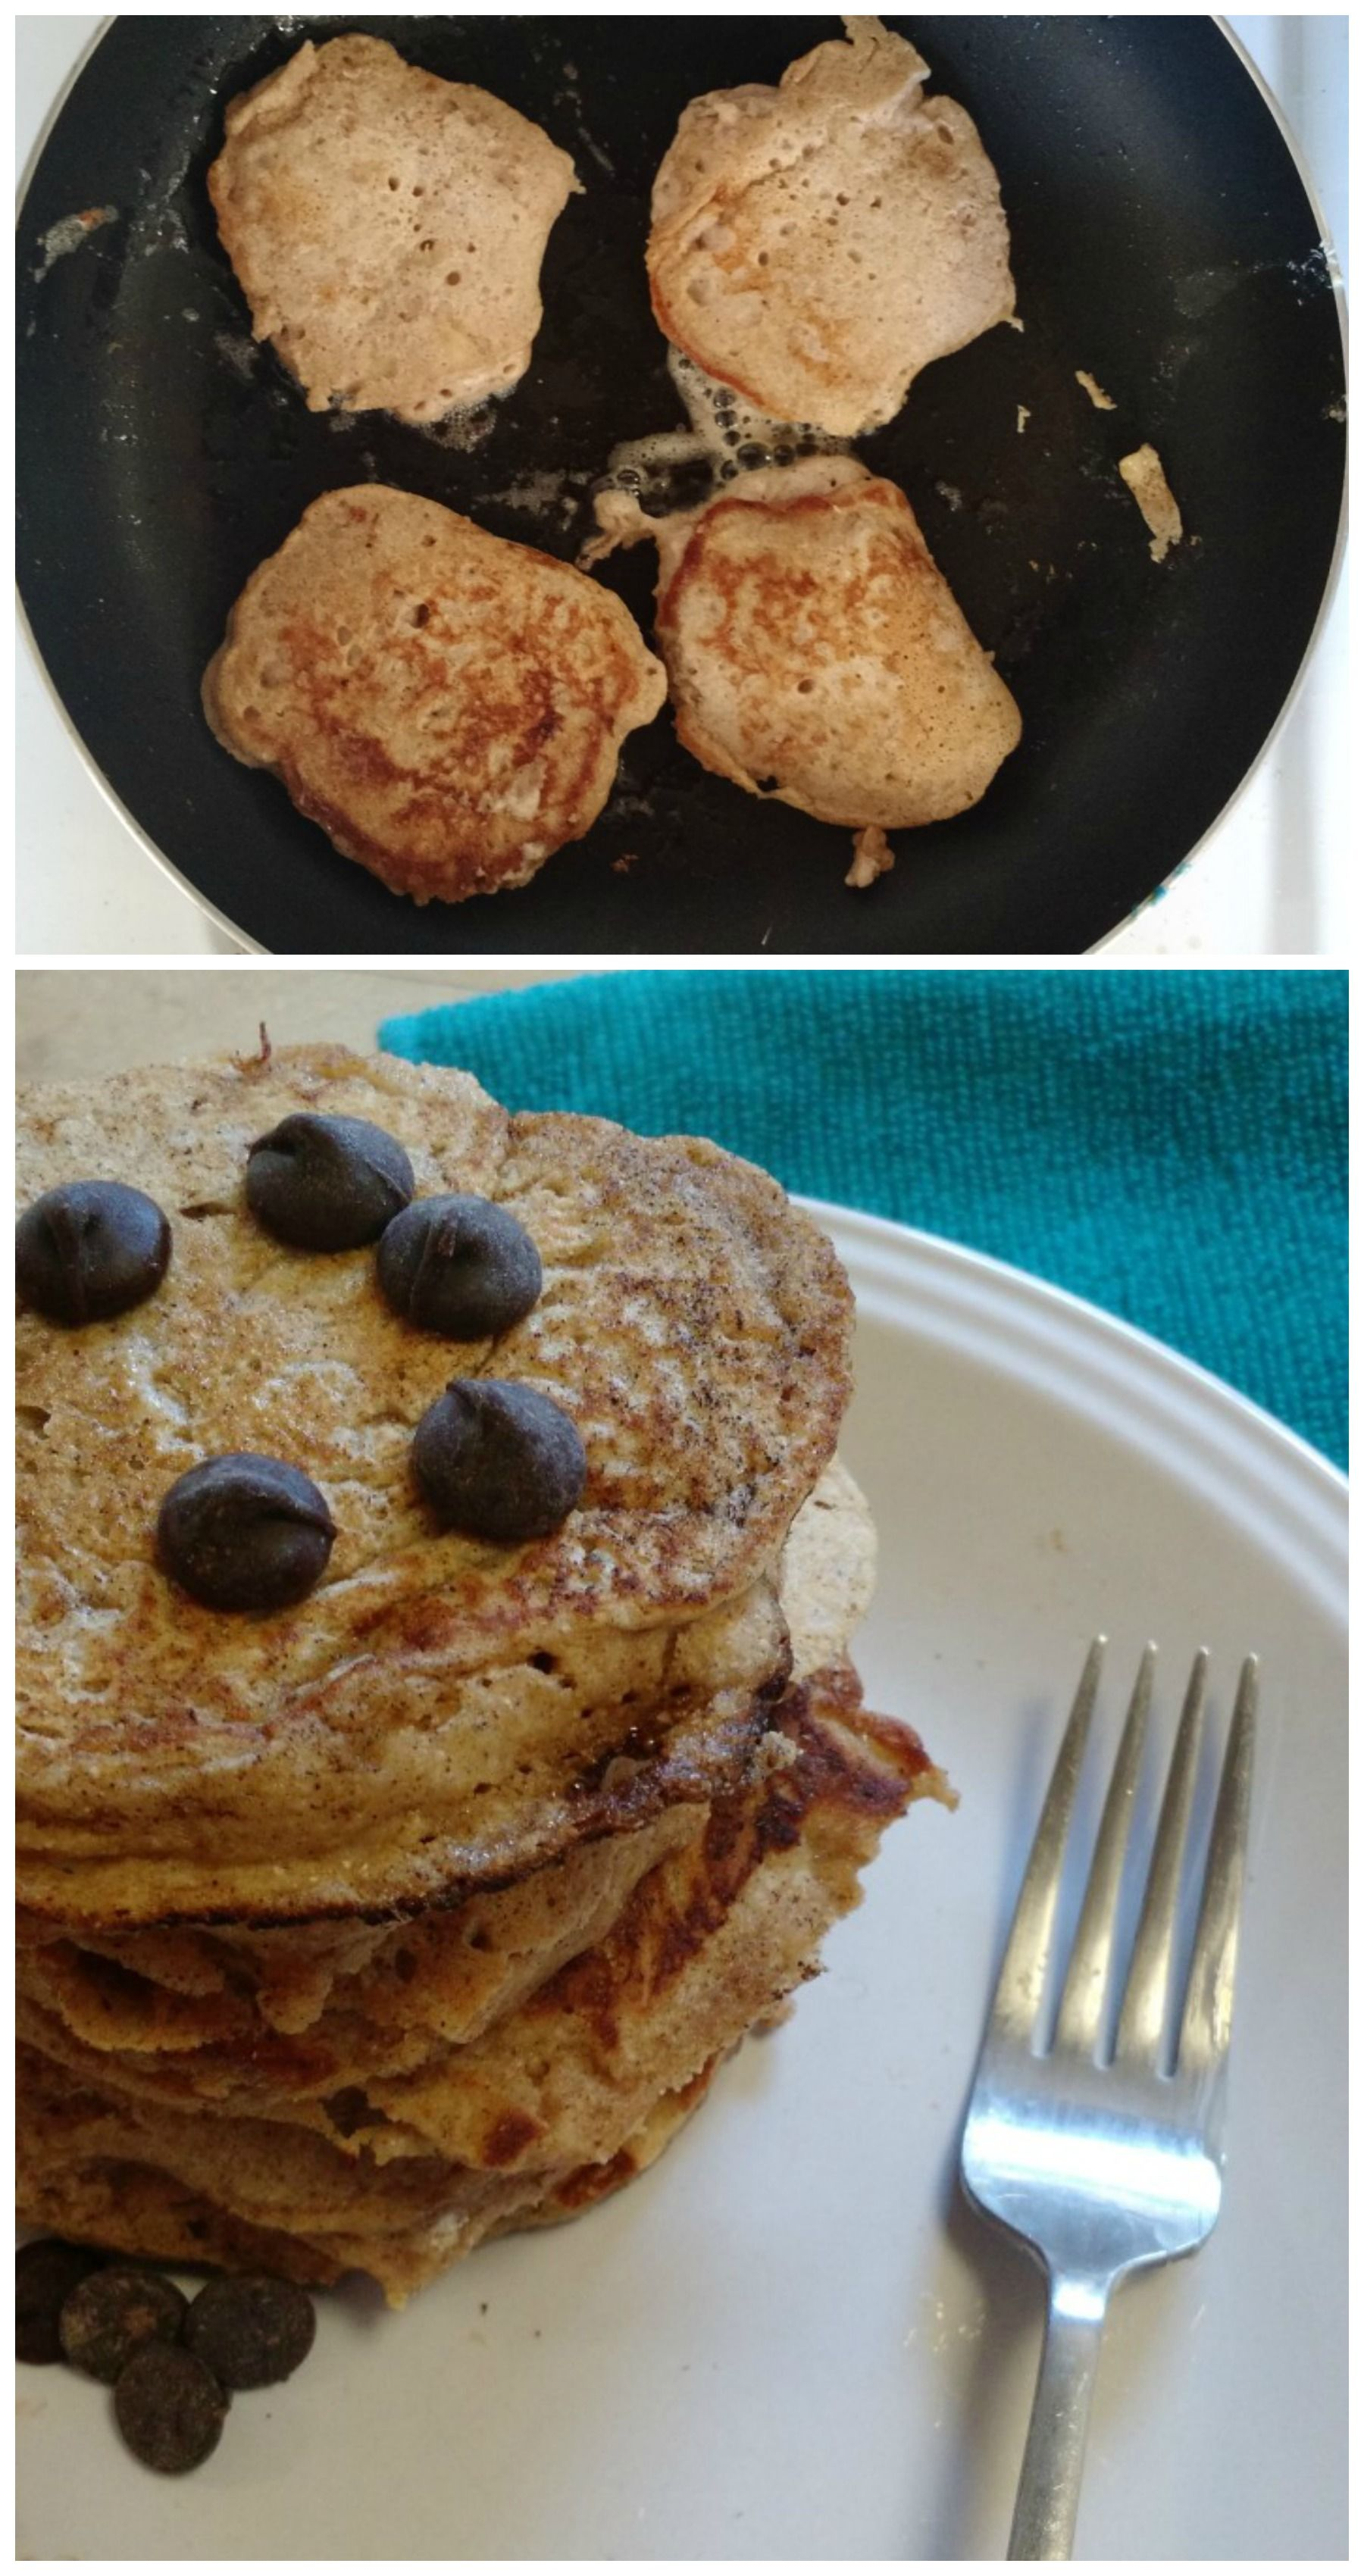 How to make soft and fluffy whole wheat banana pancakes how to make soft and fluffy whole wheat banana pancakes wholewheat banana ccuart Choice Image